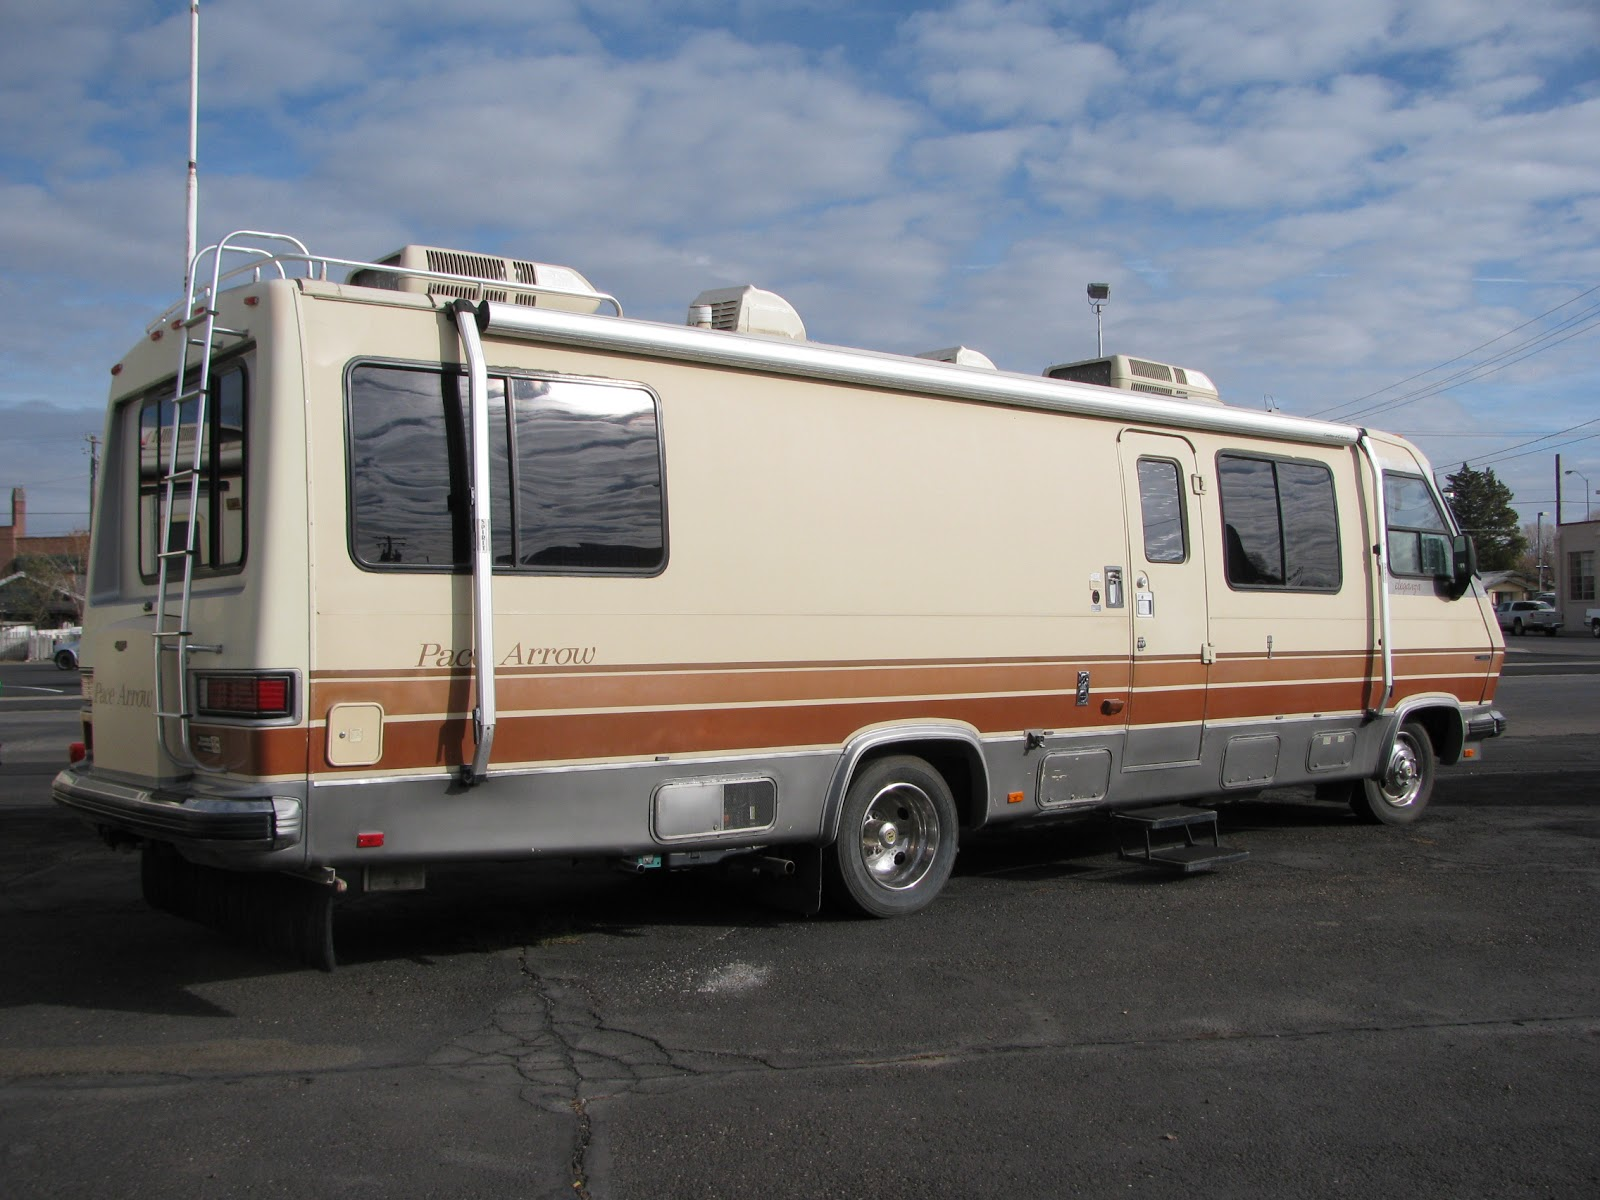 1988 Pace Arrow For Sale http://timemachinescollectableautos.blogspot.com/2012/11/1988-pace-arrow-laganza-32-ft-454-chevy.html